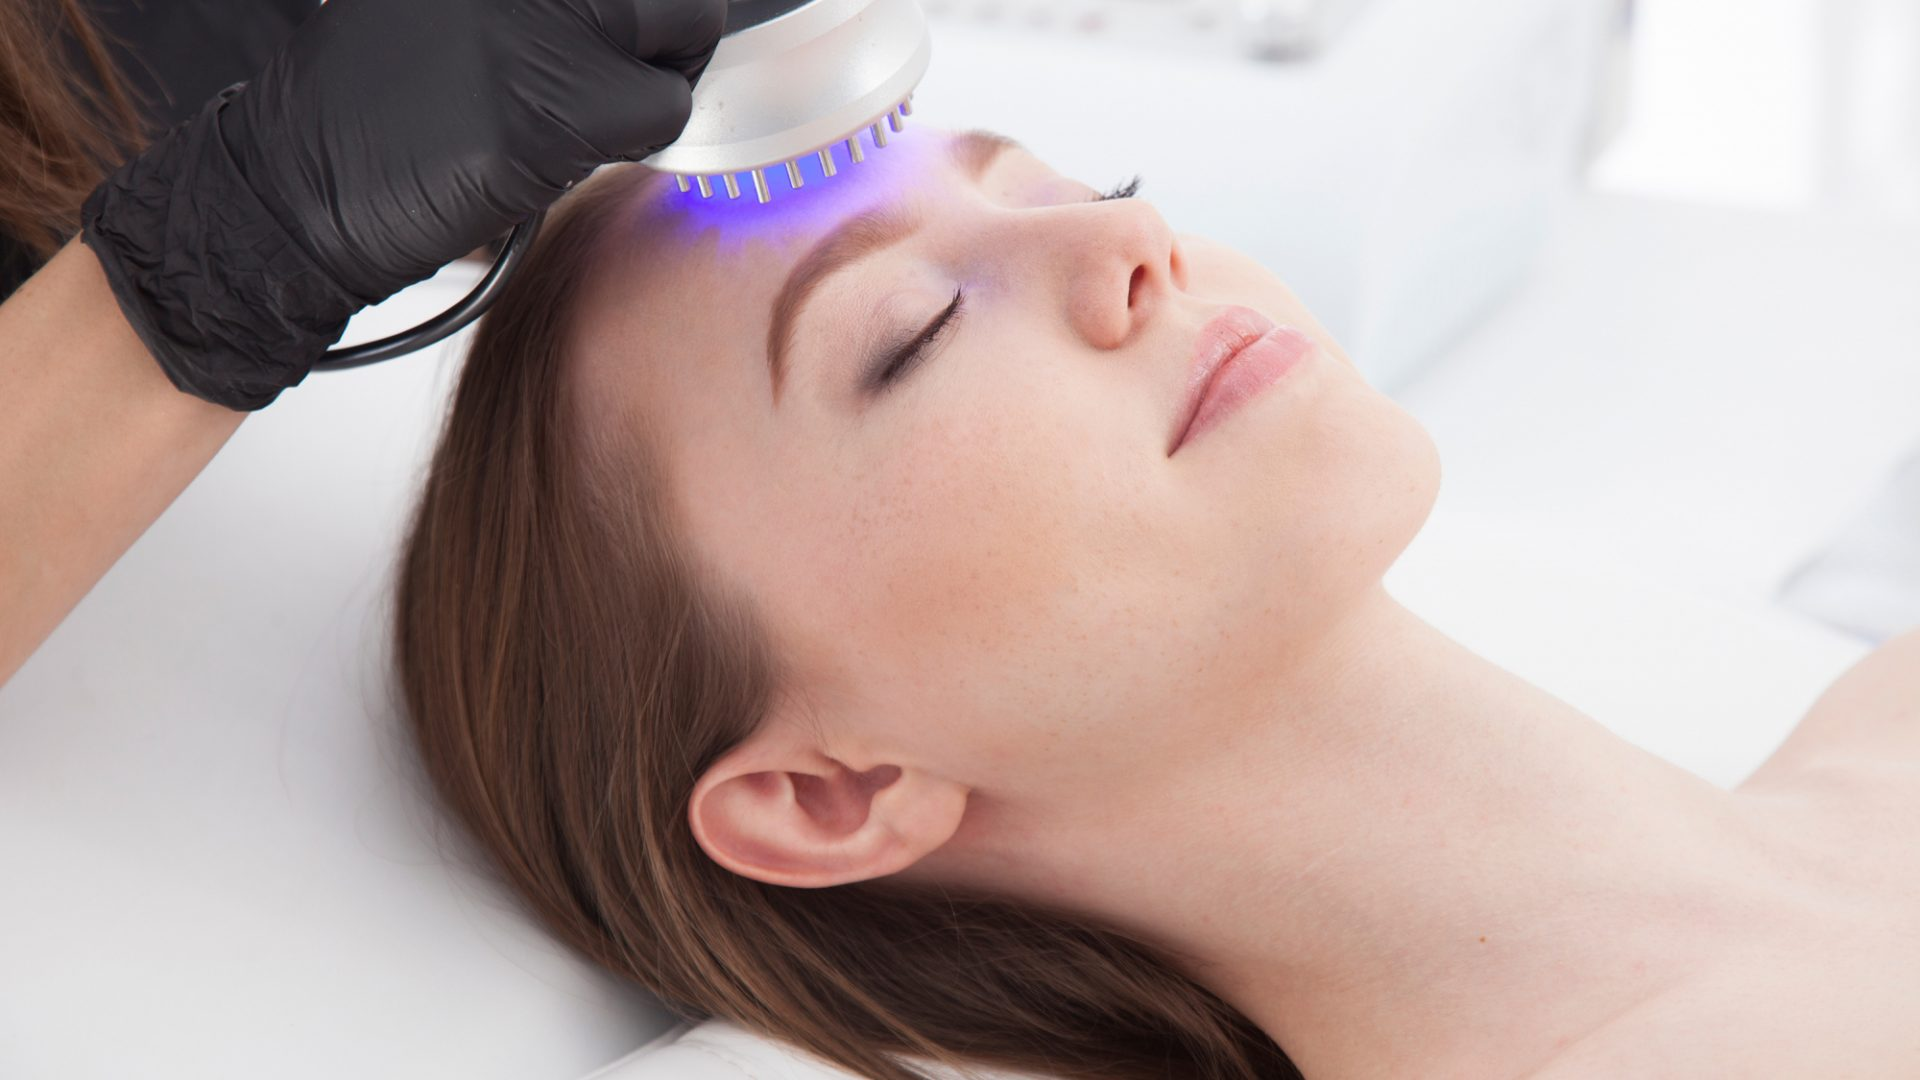 A photo of a woman having skin beauty therapy using photonics